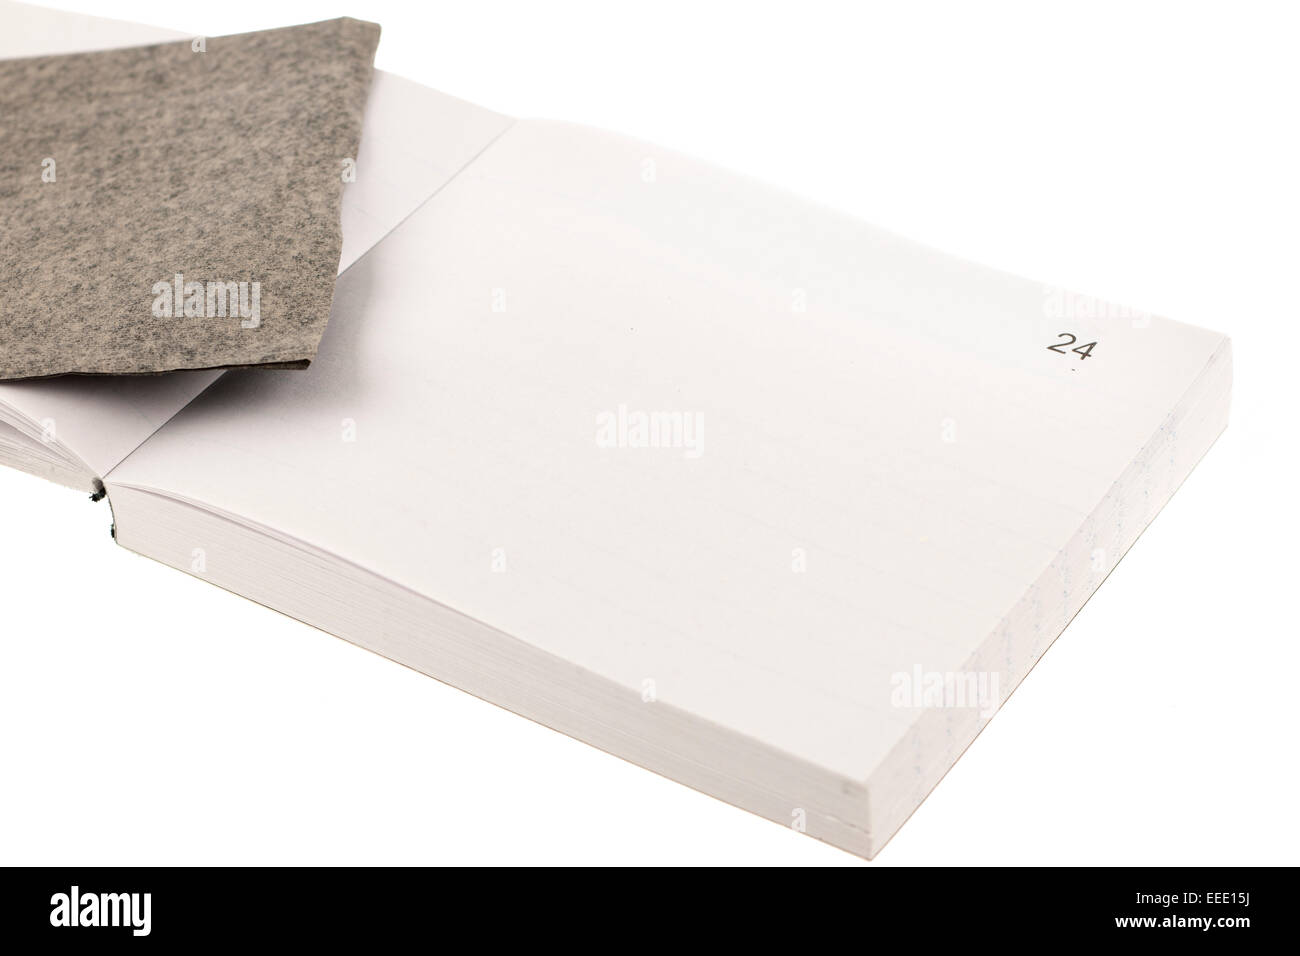 White tear out pages book with black carbon paper - Stock Image